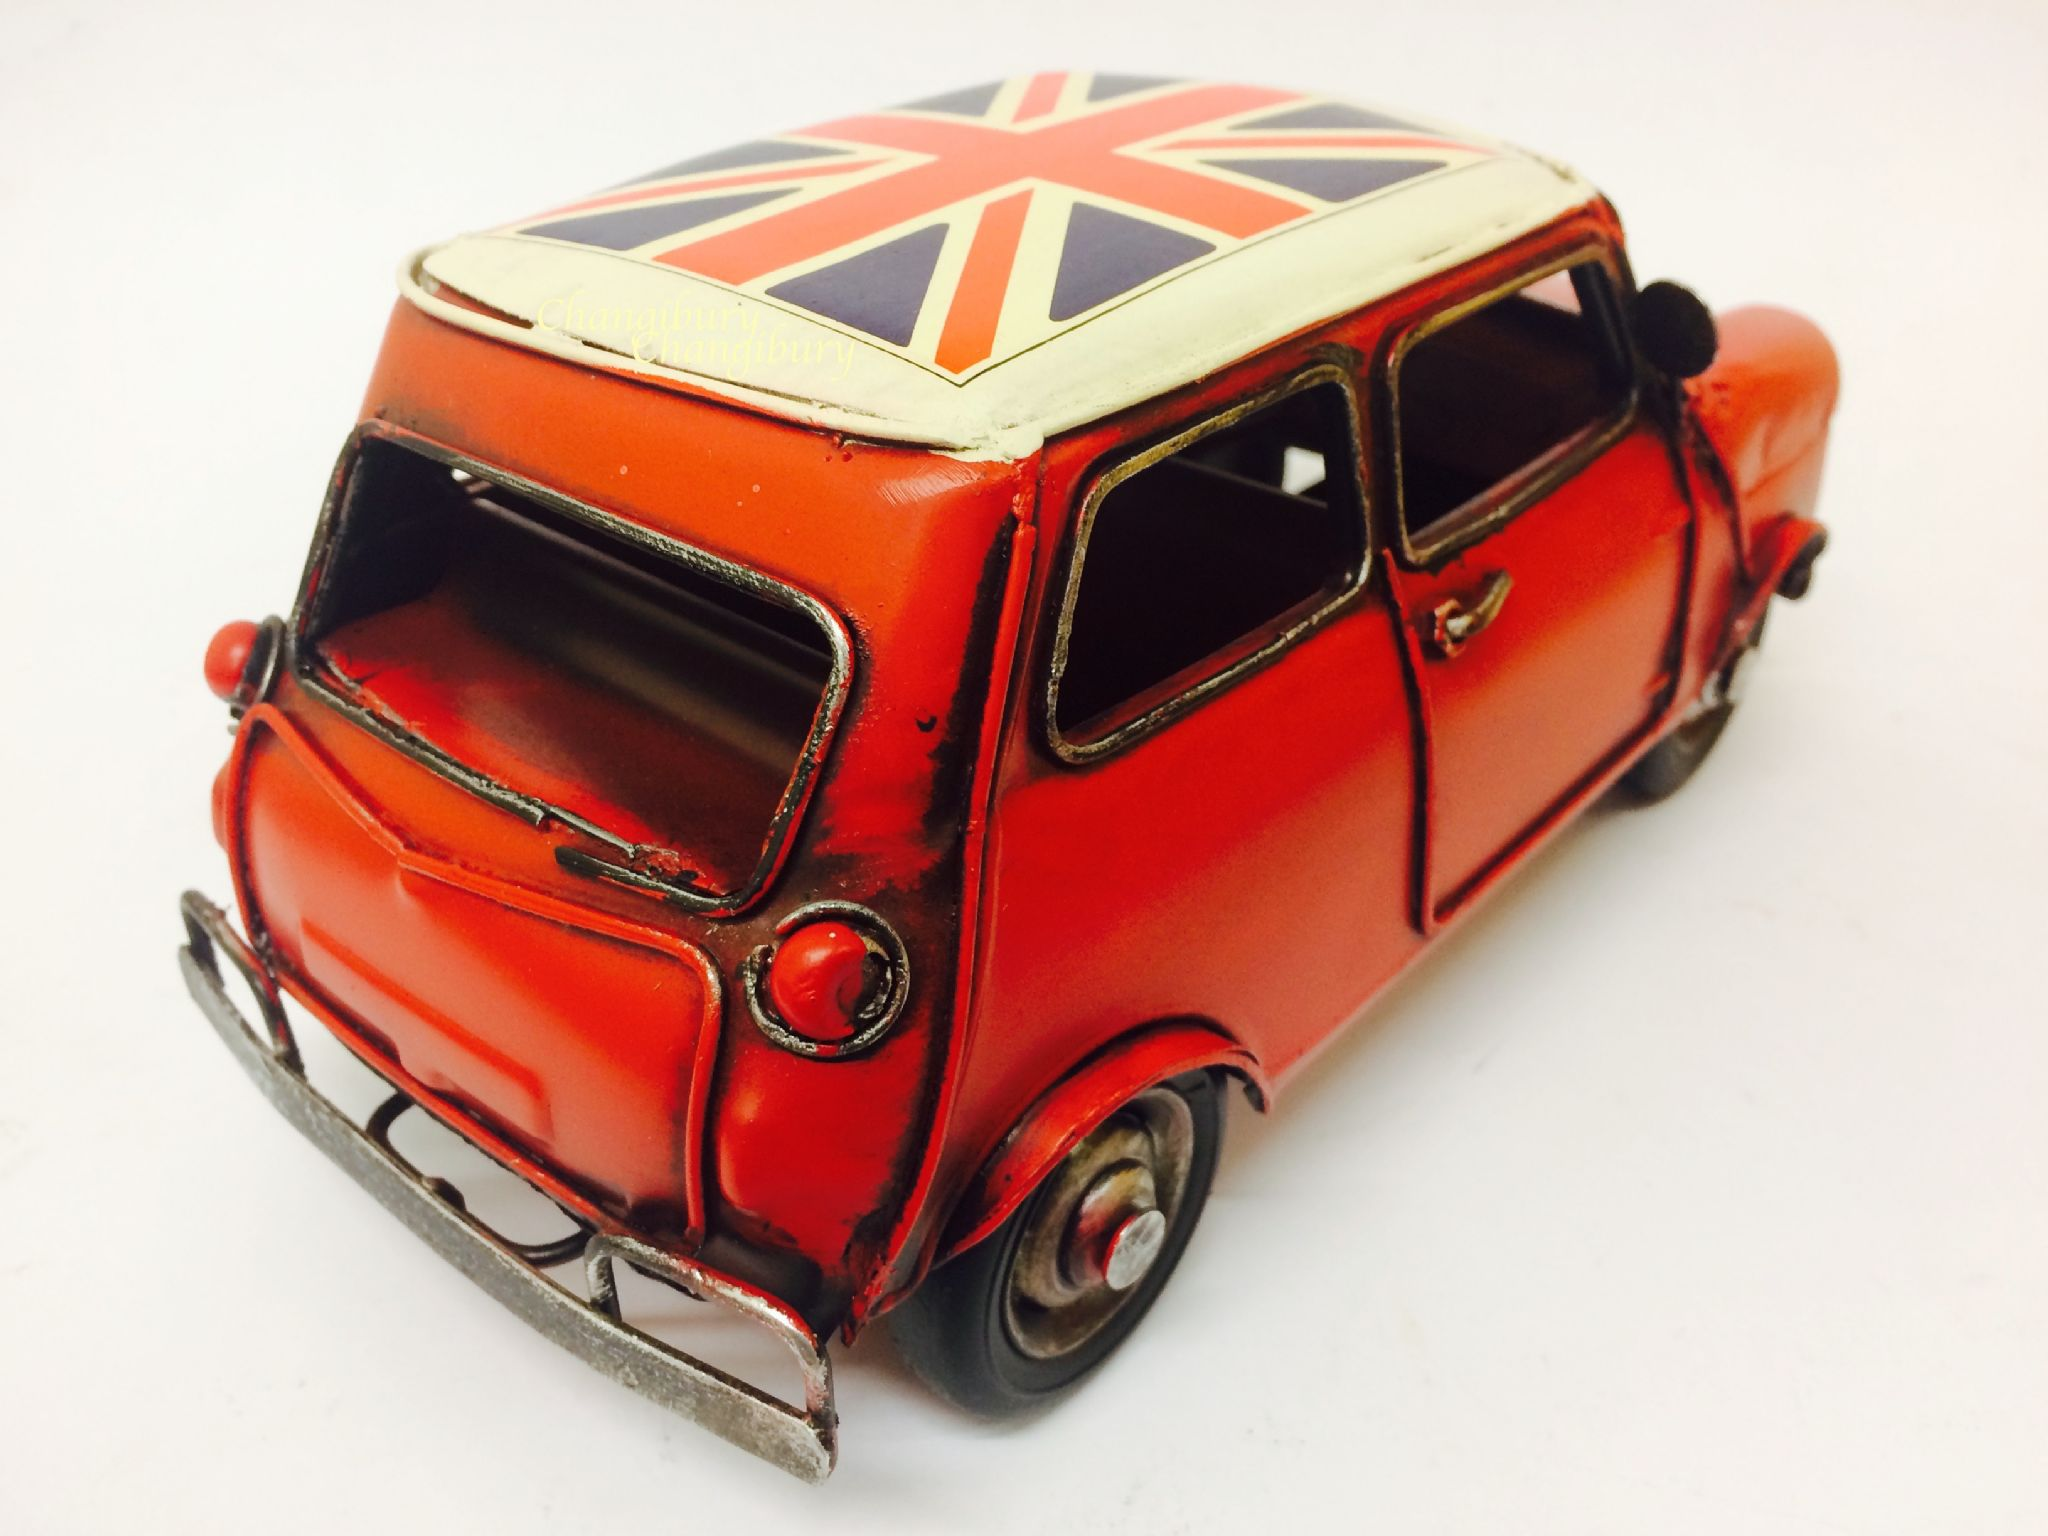 Classic Mini Cooper Red Union Jack Car Model 26cm